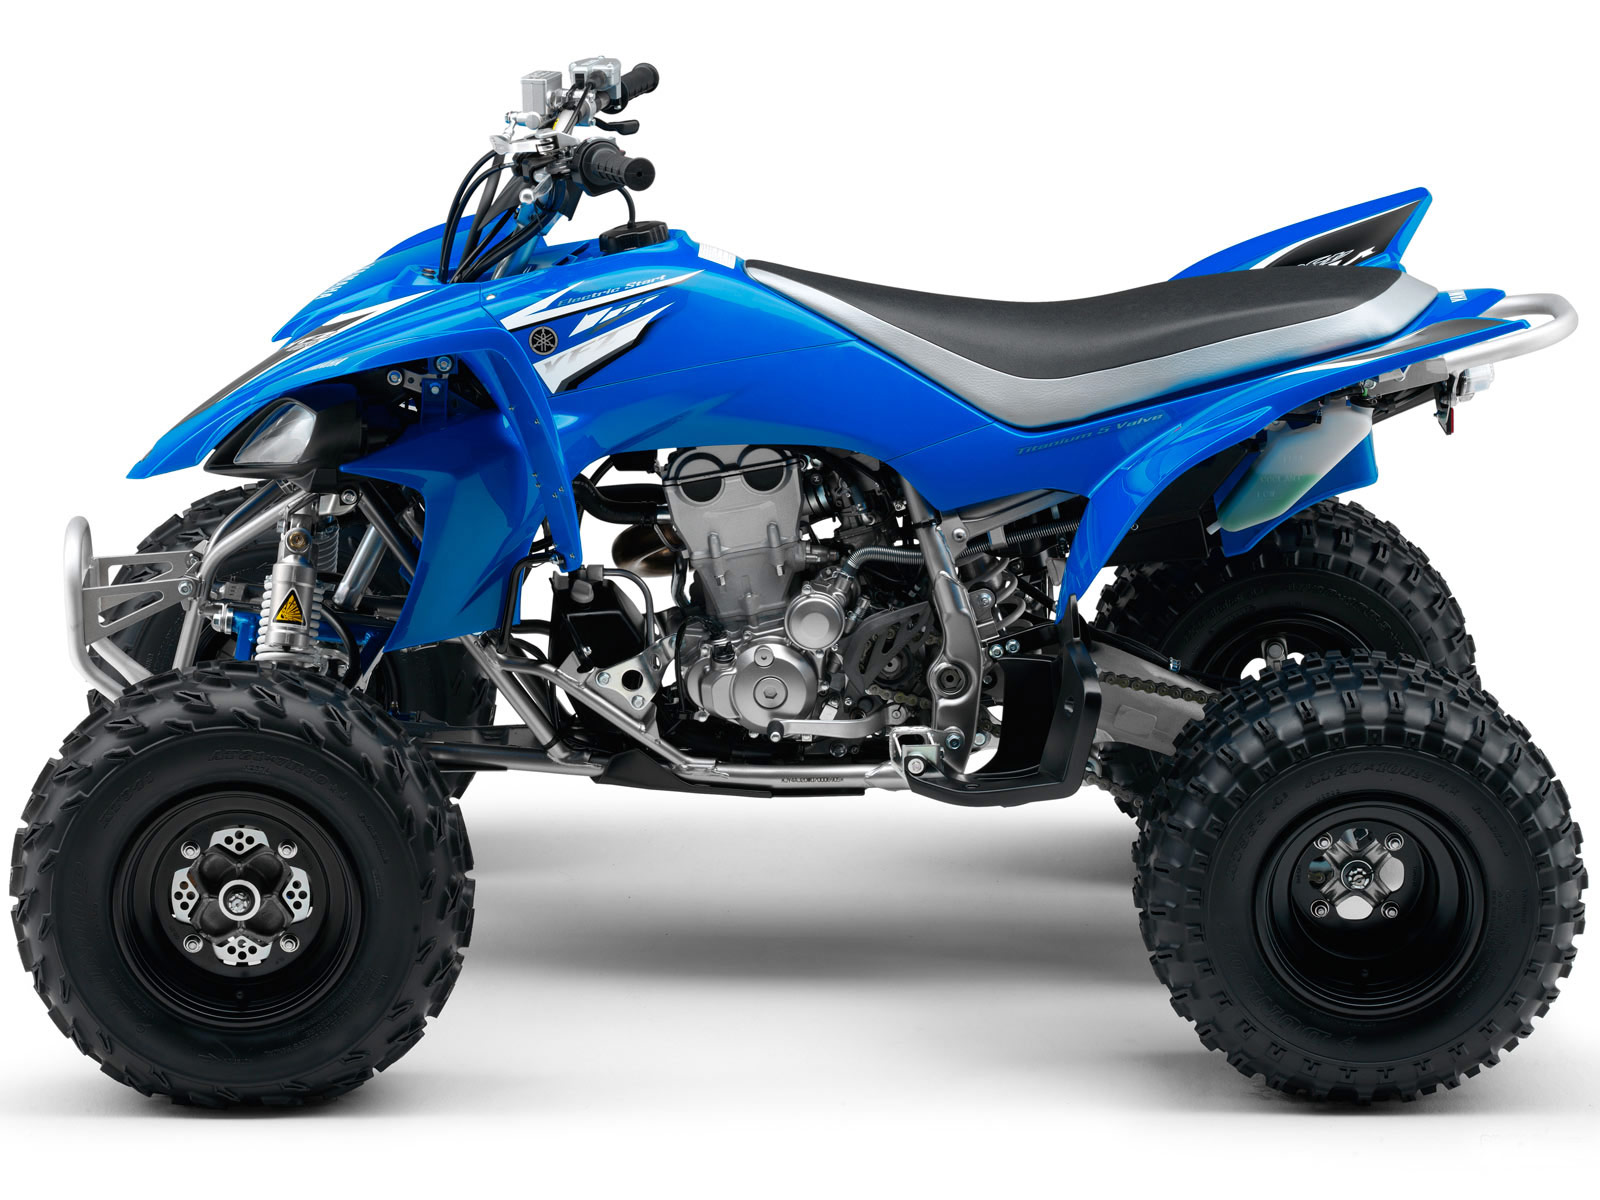 Yamaha Yfz450 Atv Pictures Review Specifications